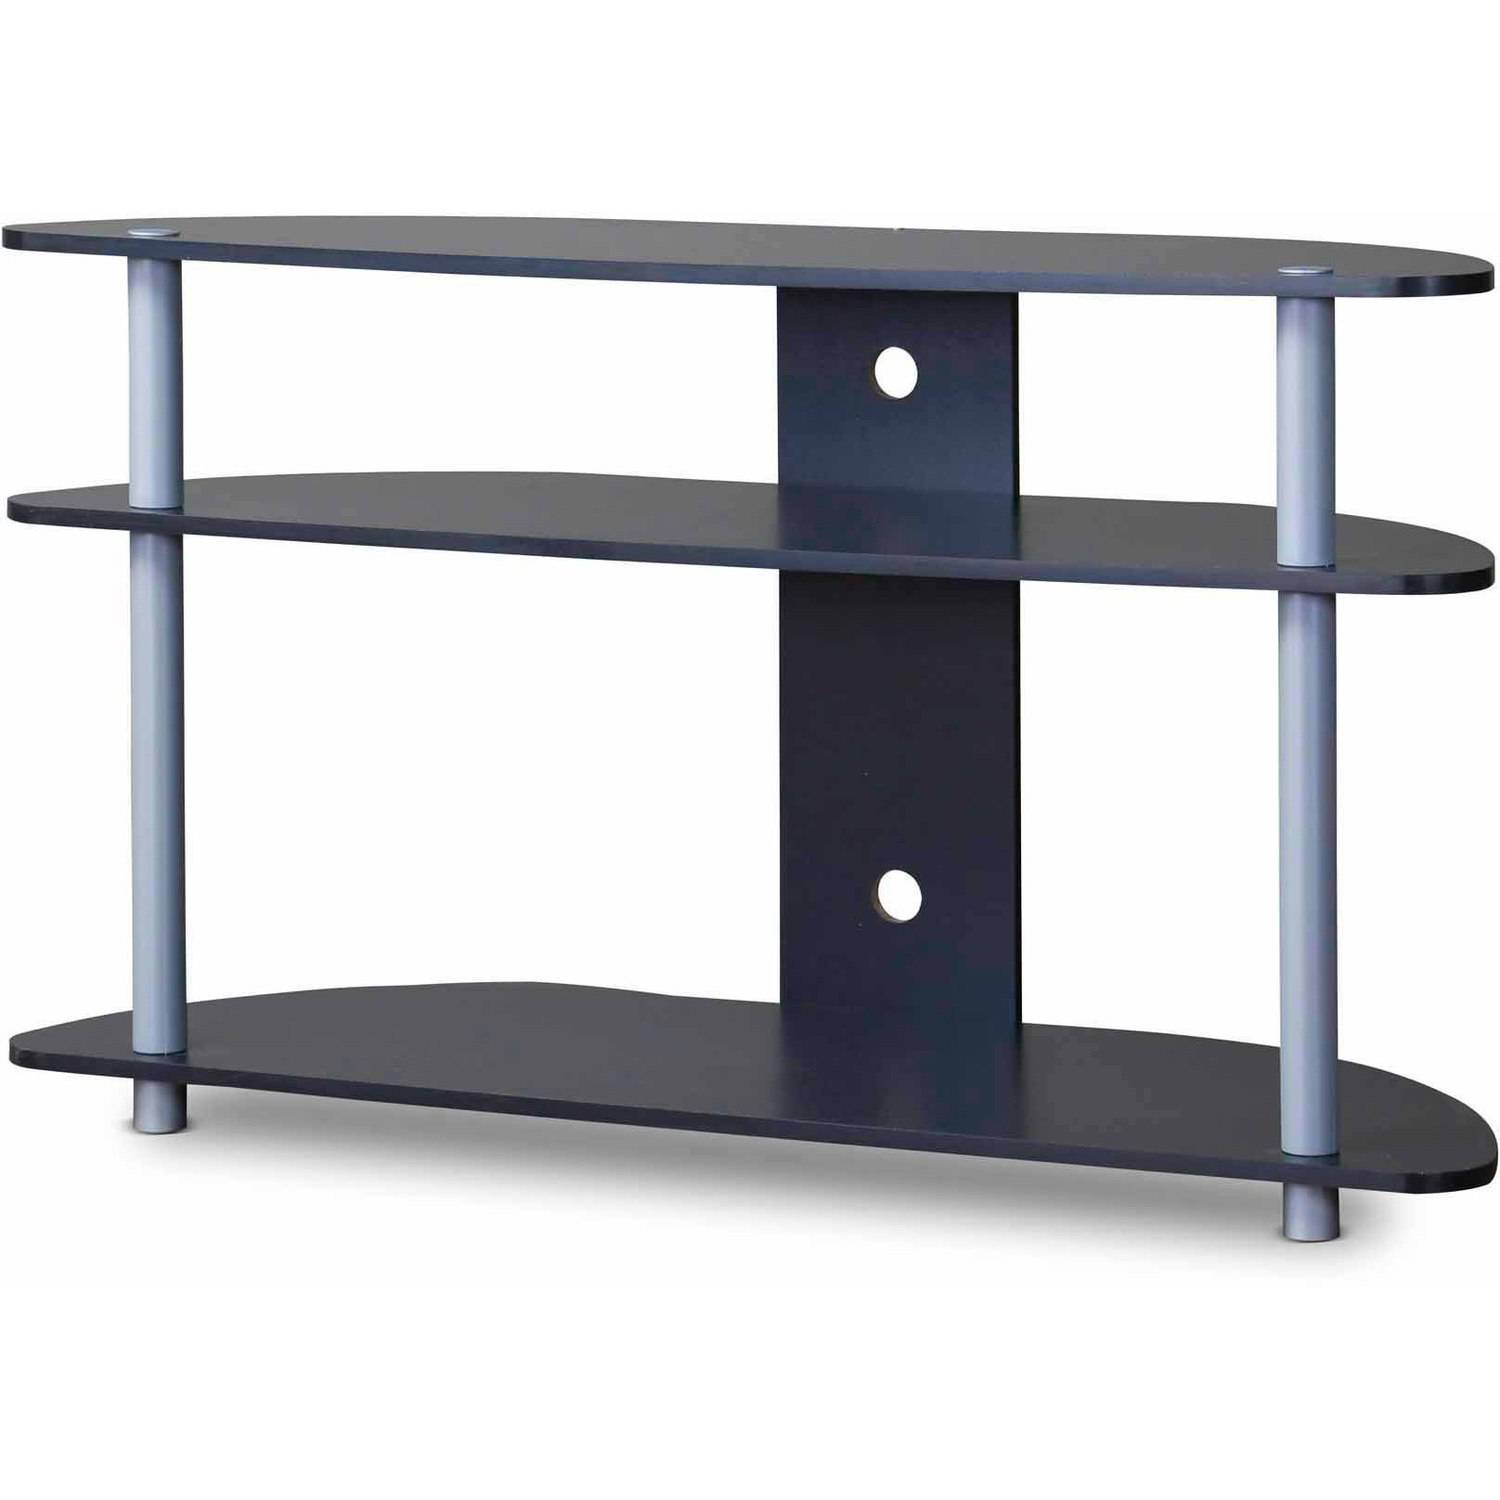 Baxton Studio Orbit TV Stand for TVs up to 38""